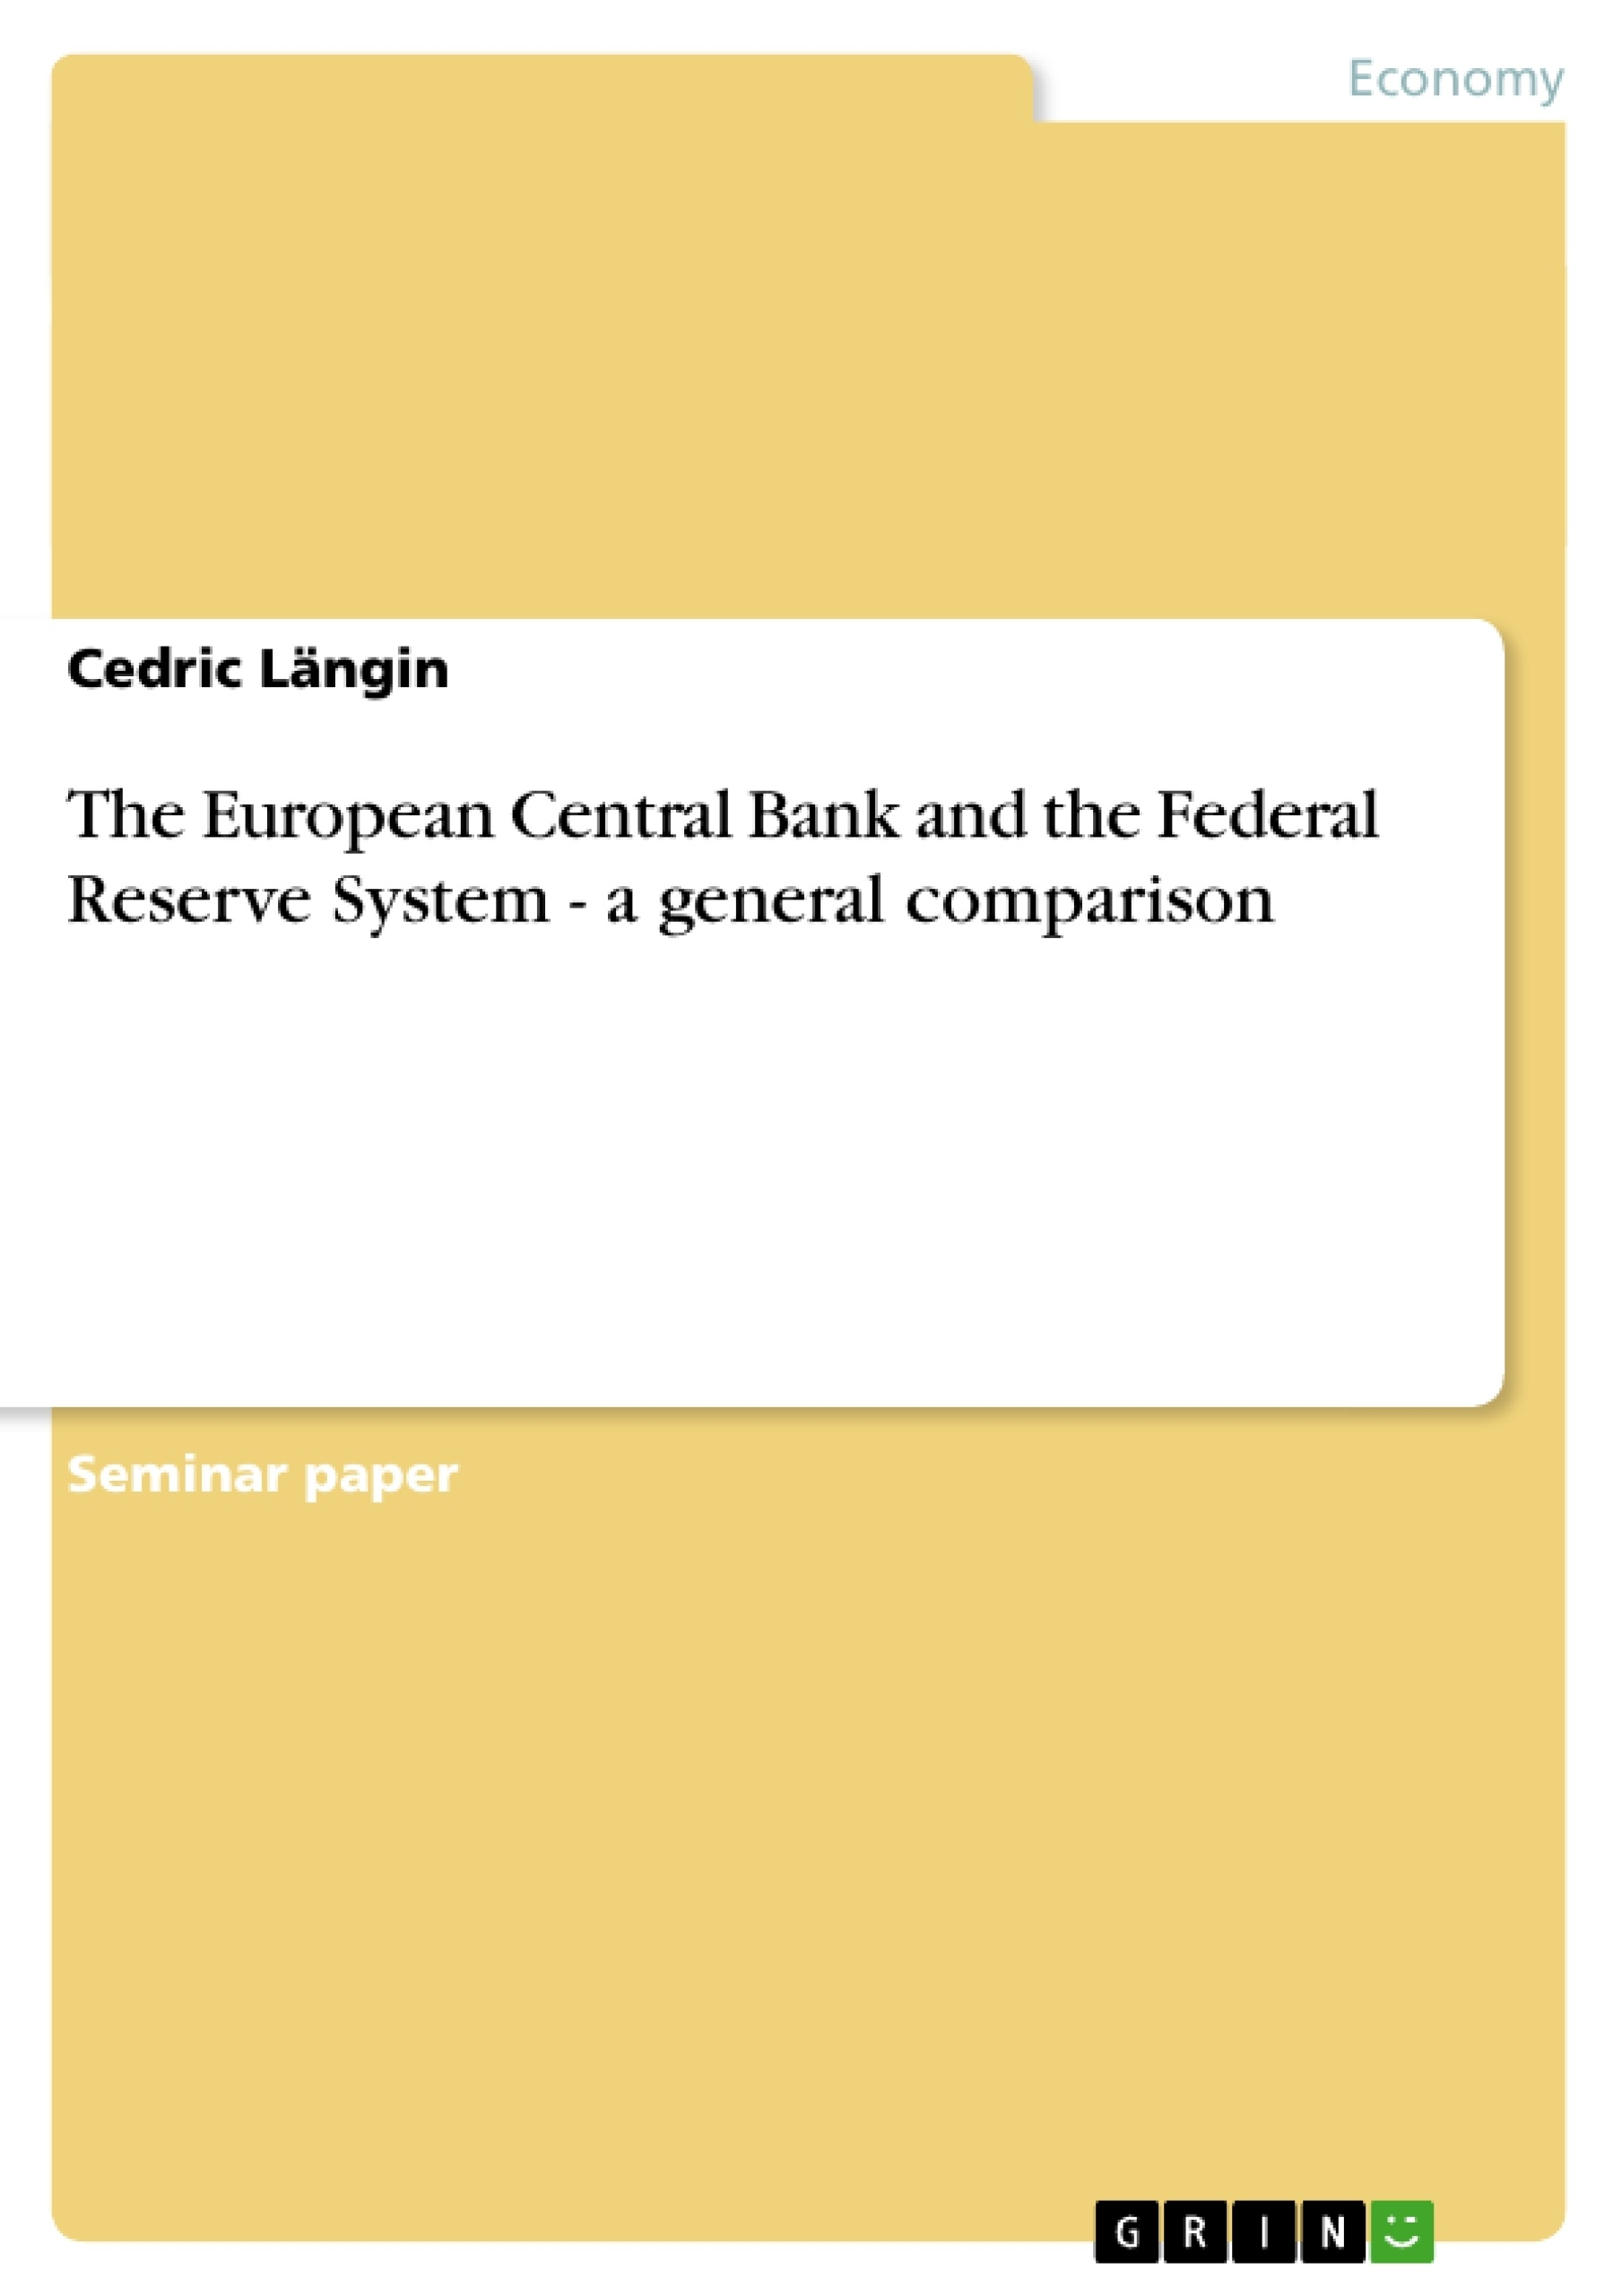 Title: The European Central Bank and the Federal Reserve System - a general comparison